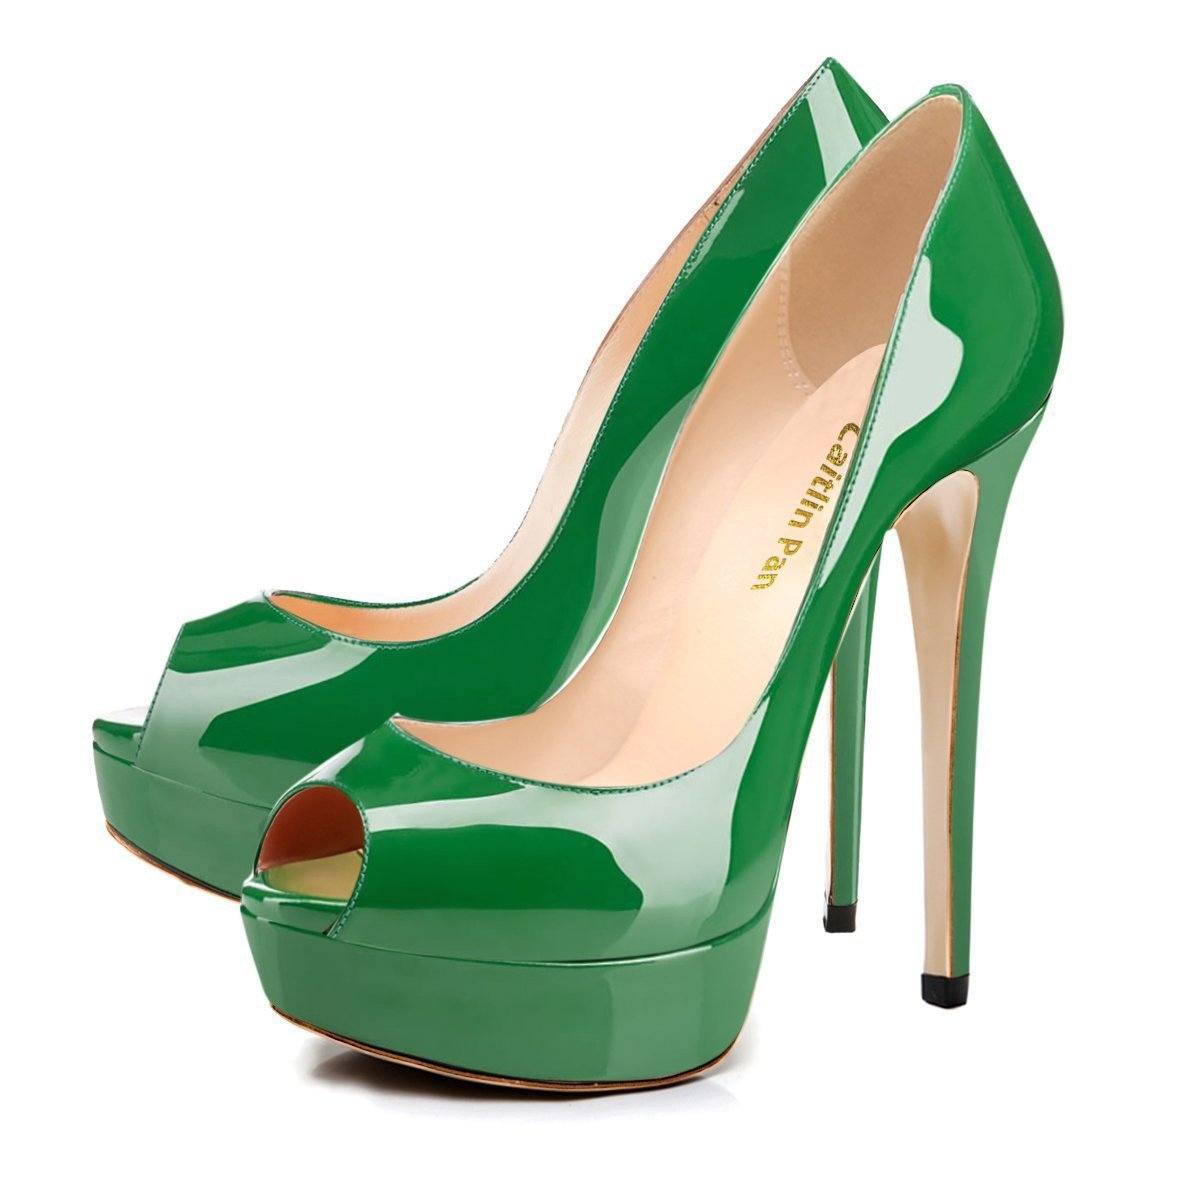 Caitlin Pan Femmes Escarpins Plateforme Green/Fond 15CM Escarpins Peep 35-45 Peep Toe 3CM Plateforme Talon Chaussures Open Toe 35-45 Green/Fond R0uge b9009e7 - conorscully.space